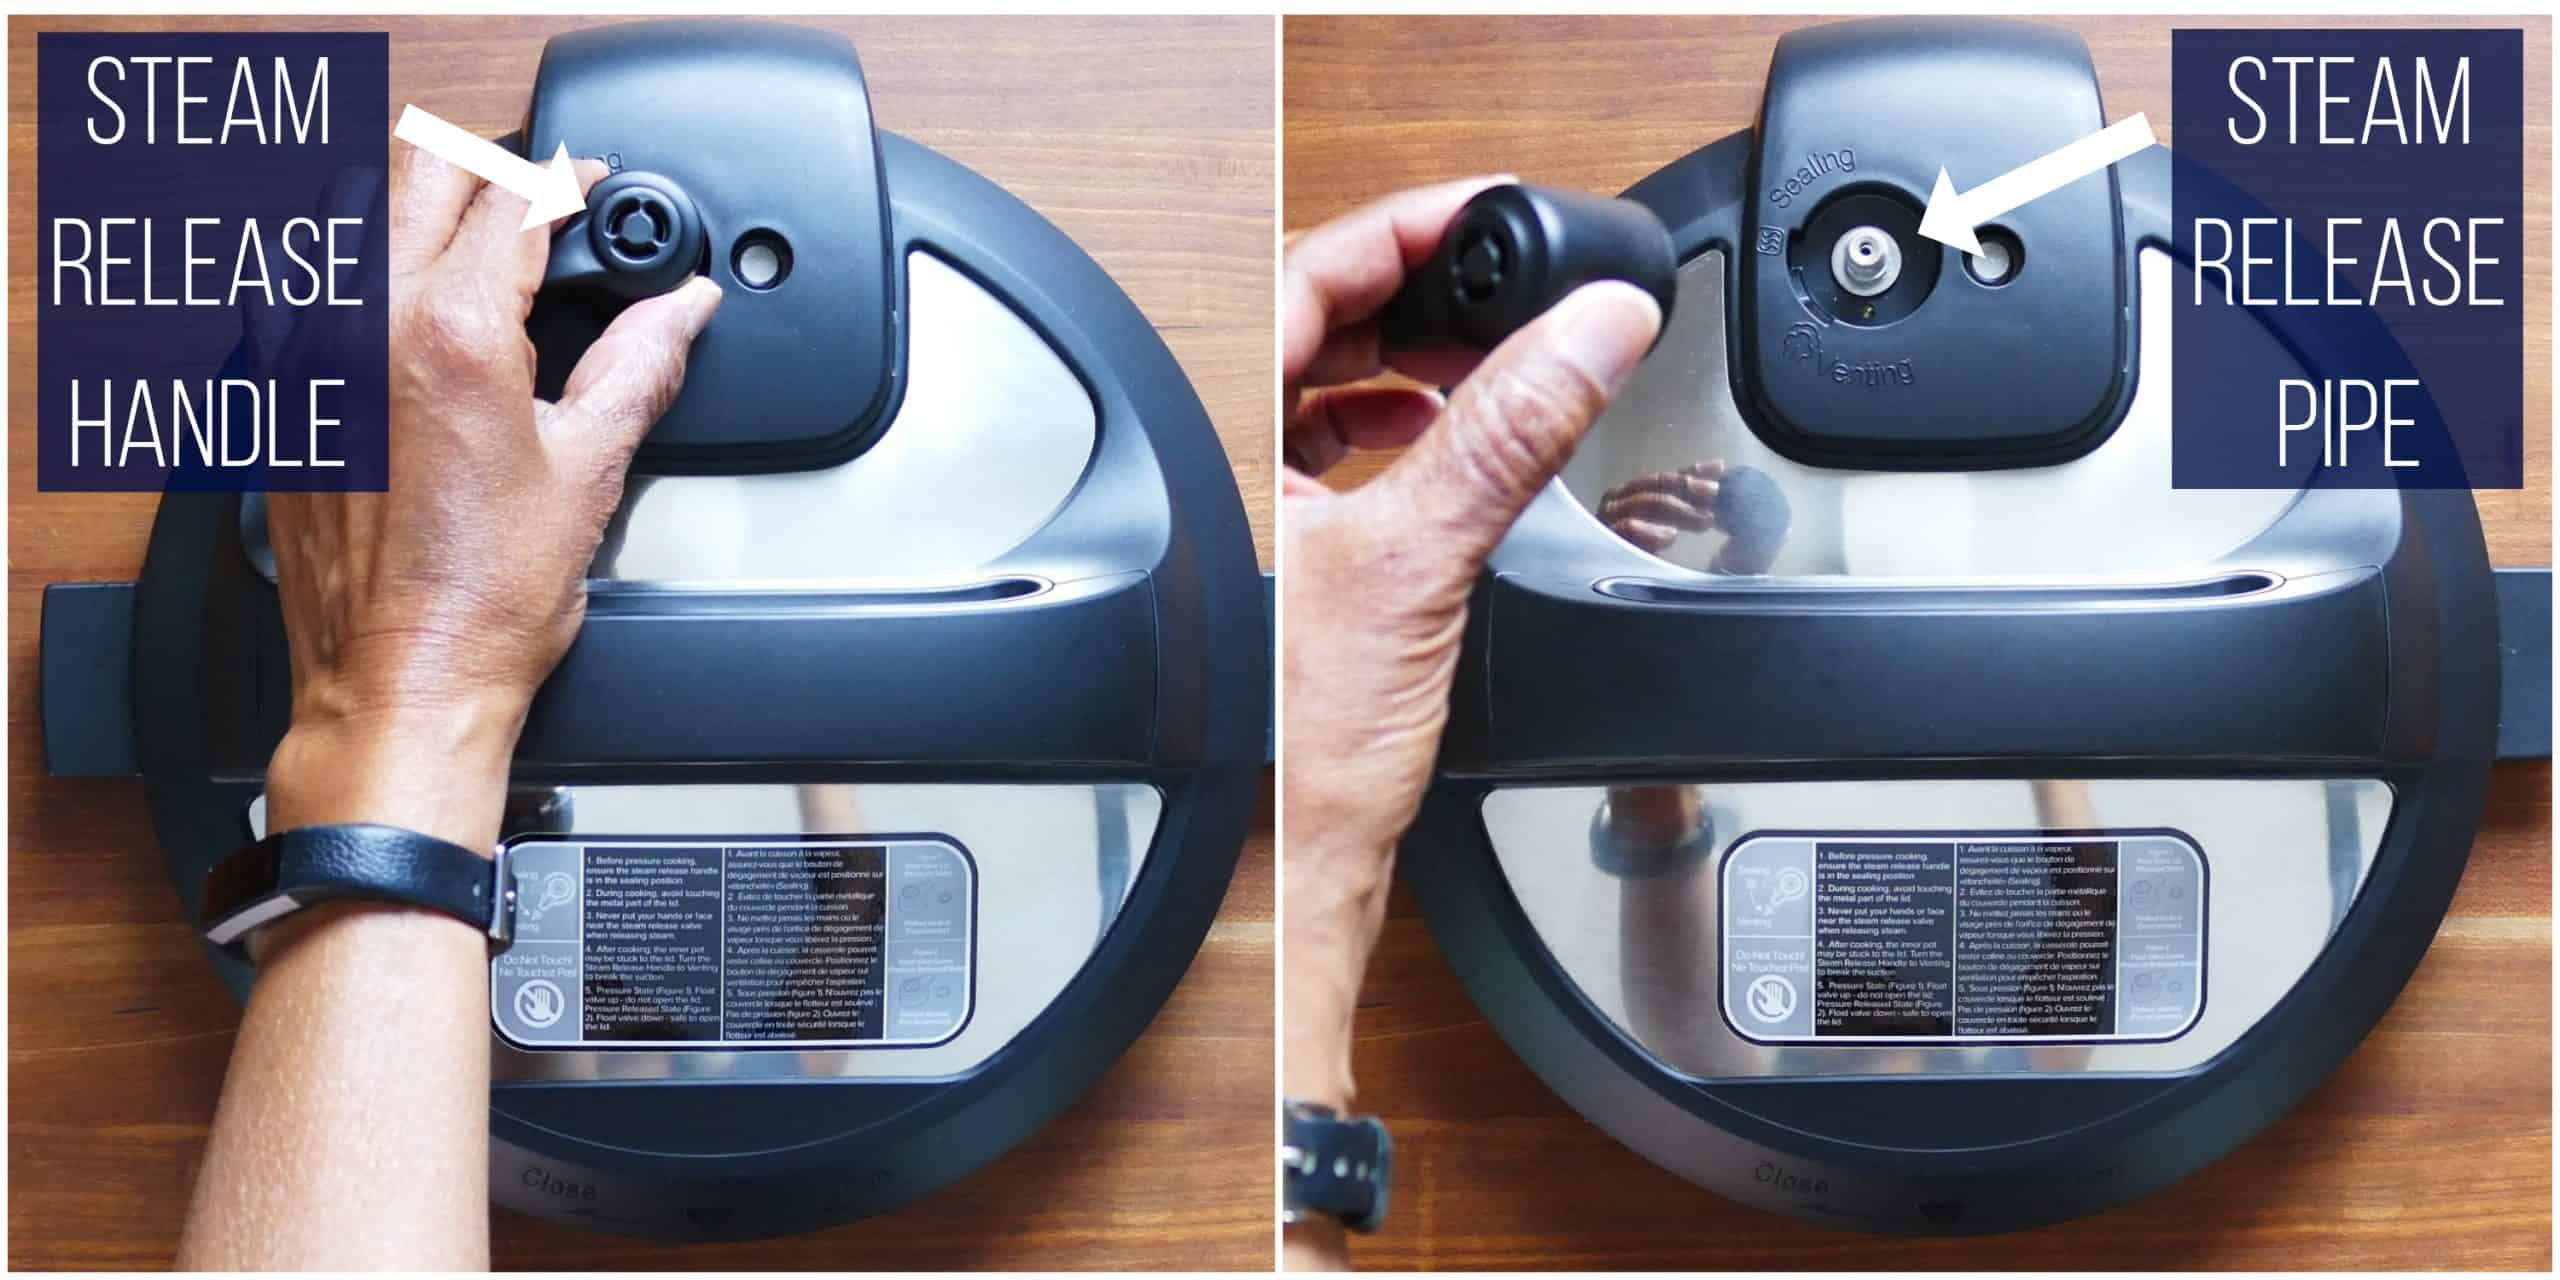 Instant Pot Duo collage - steam release handle, removed, steam release pipe